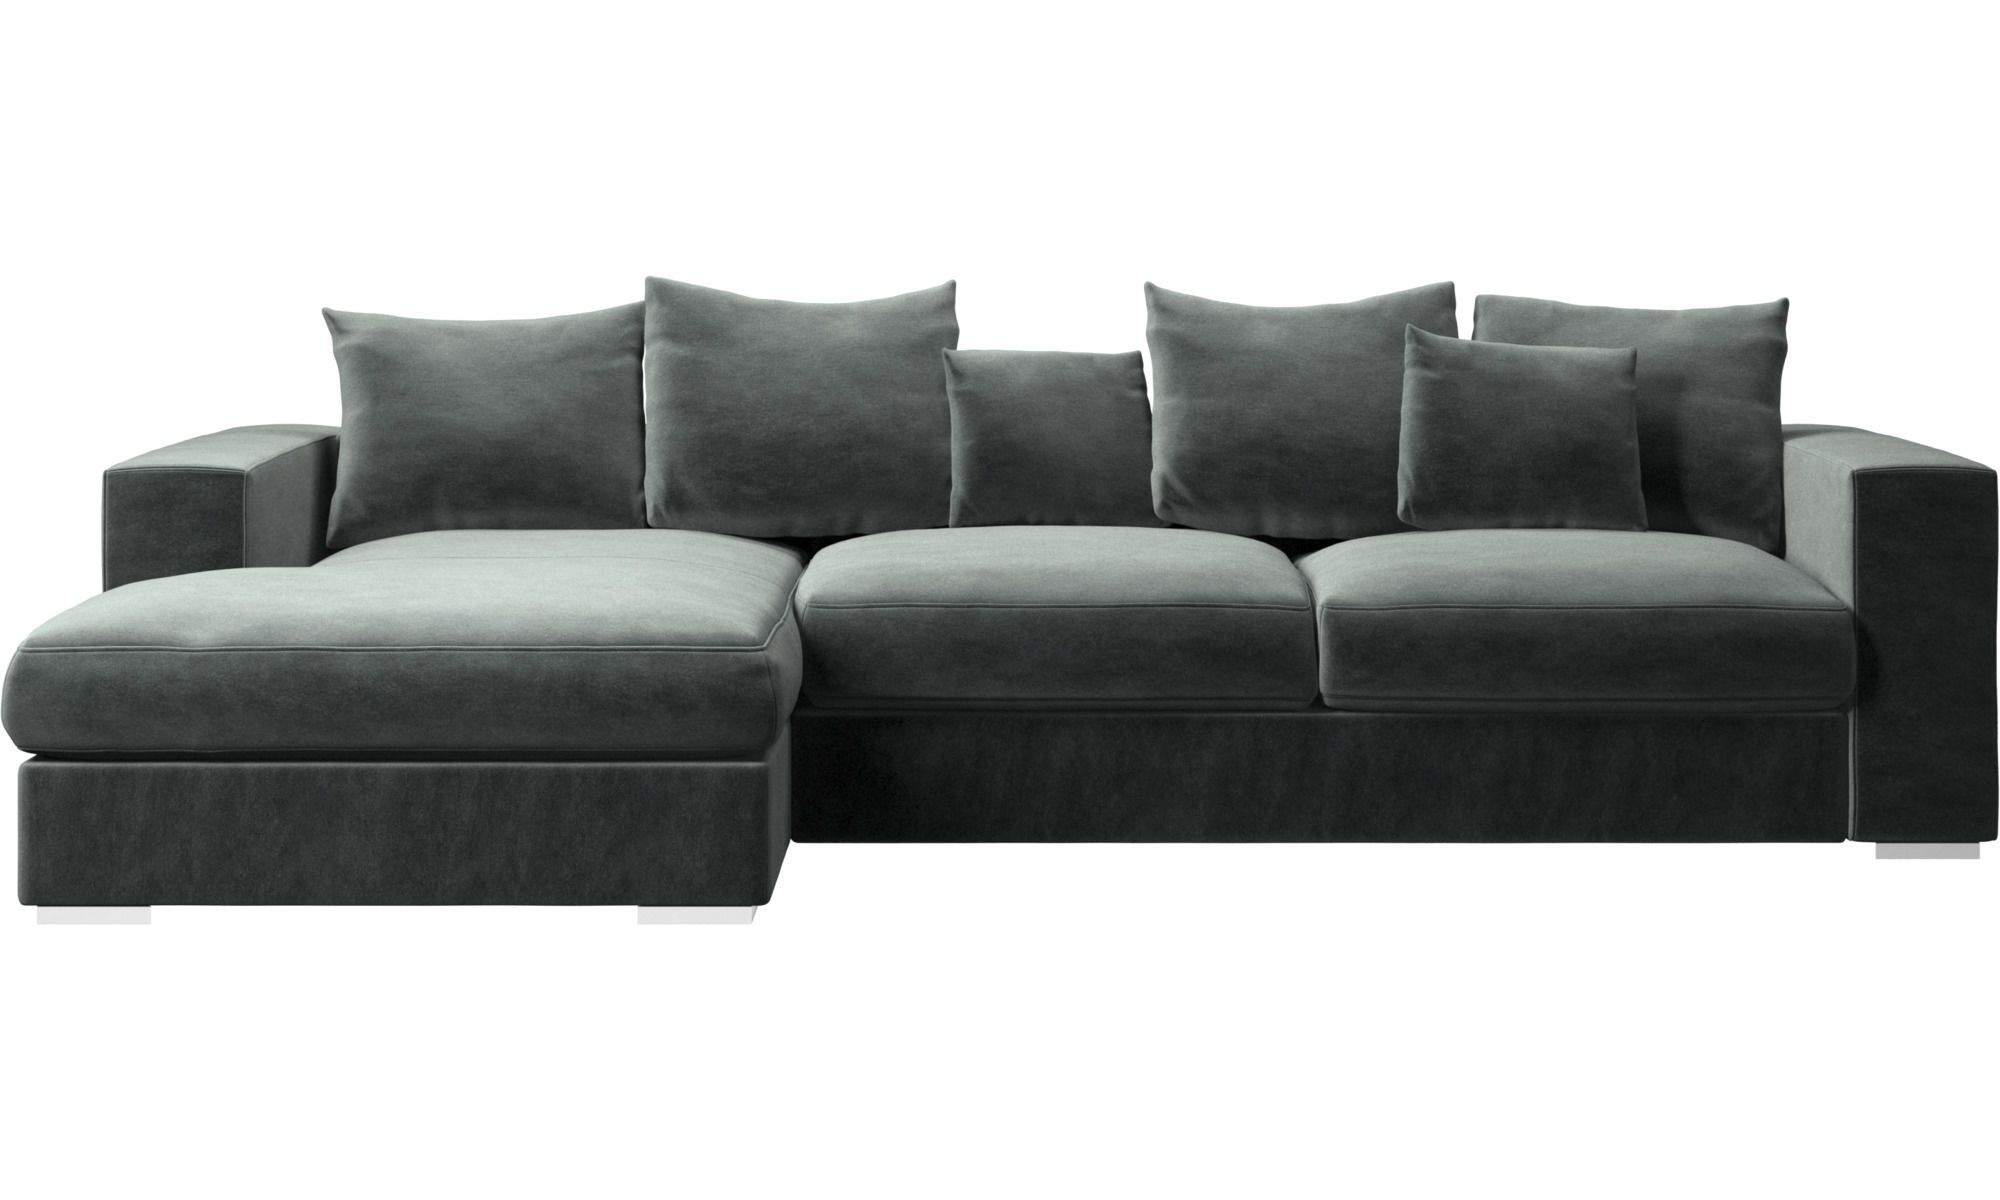 Say Yes To Sofa Chaise Lounge In 2020 Oversized Chaise Lounge